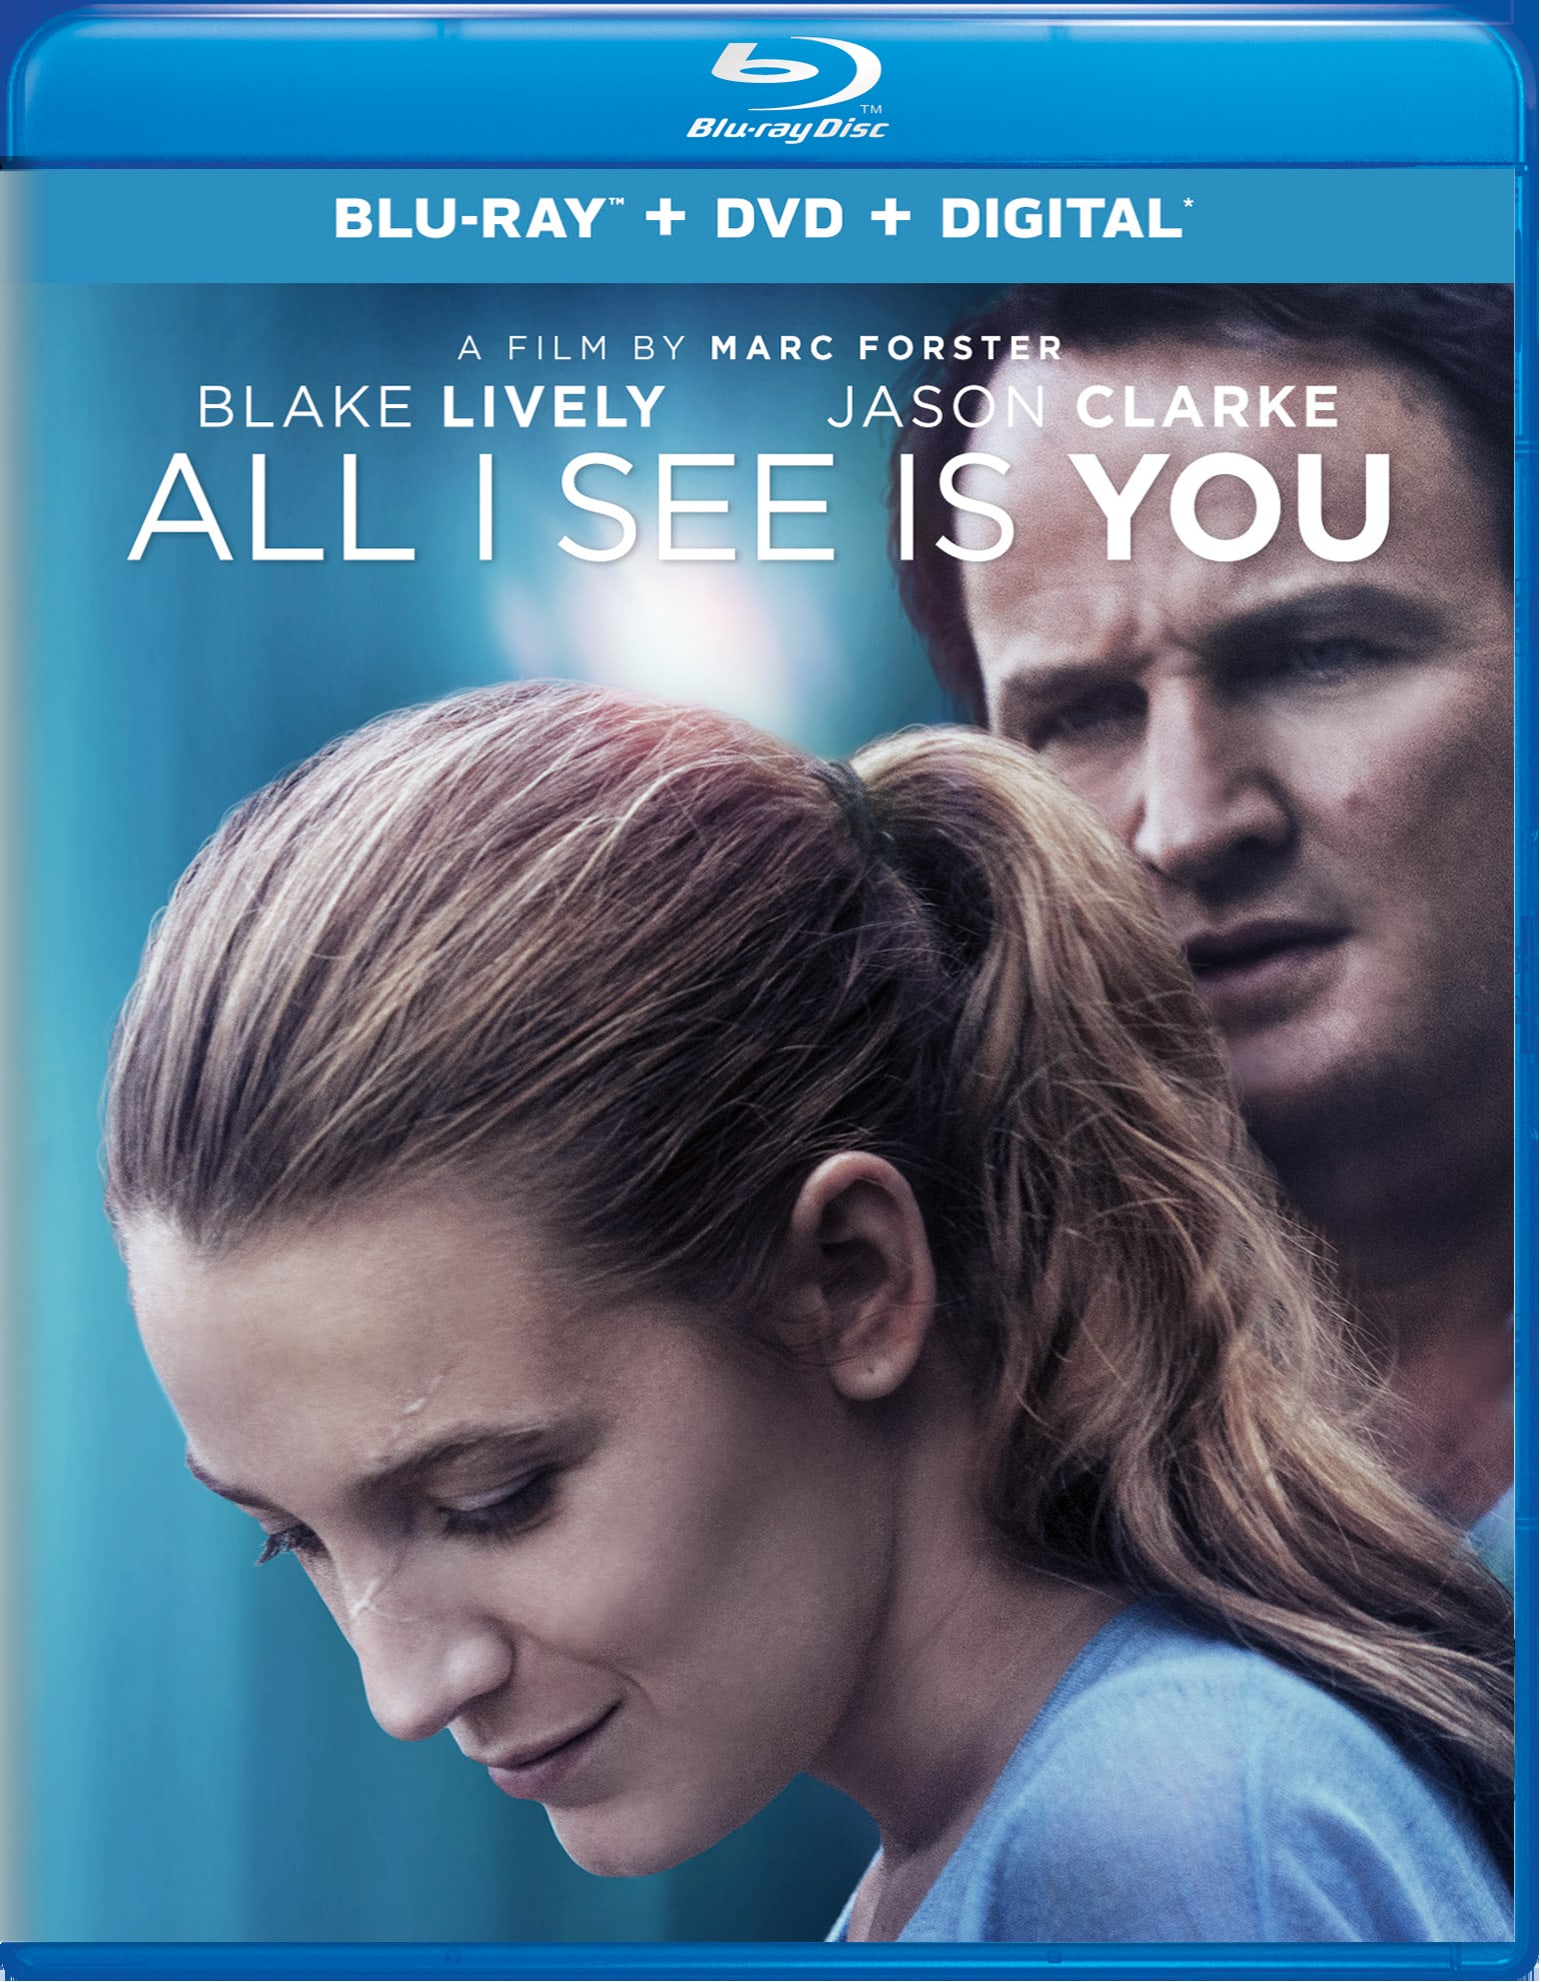 All I See Is You (DVD + Digital) [Blu-ray]